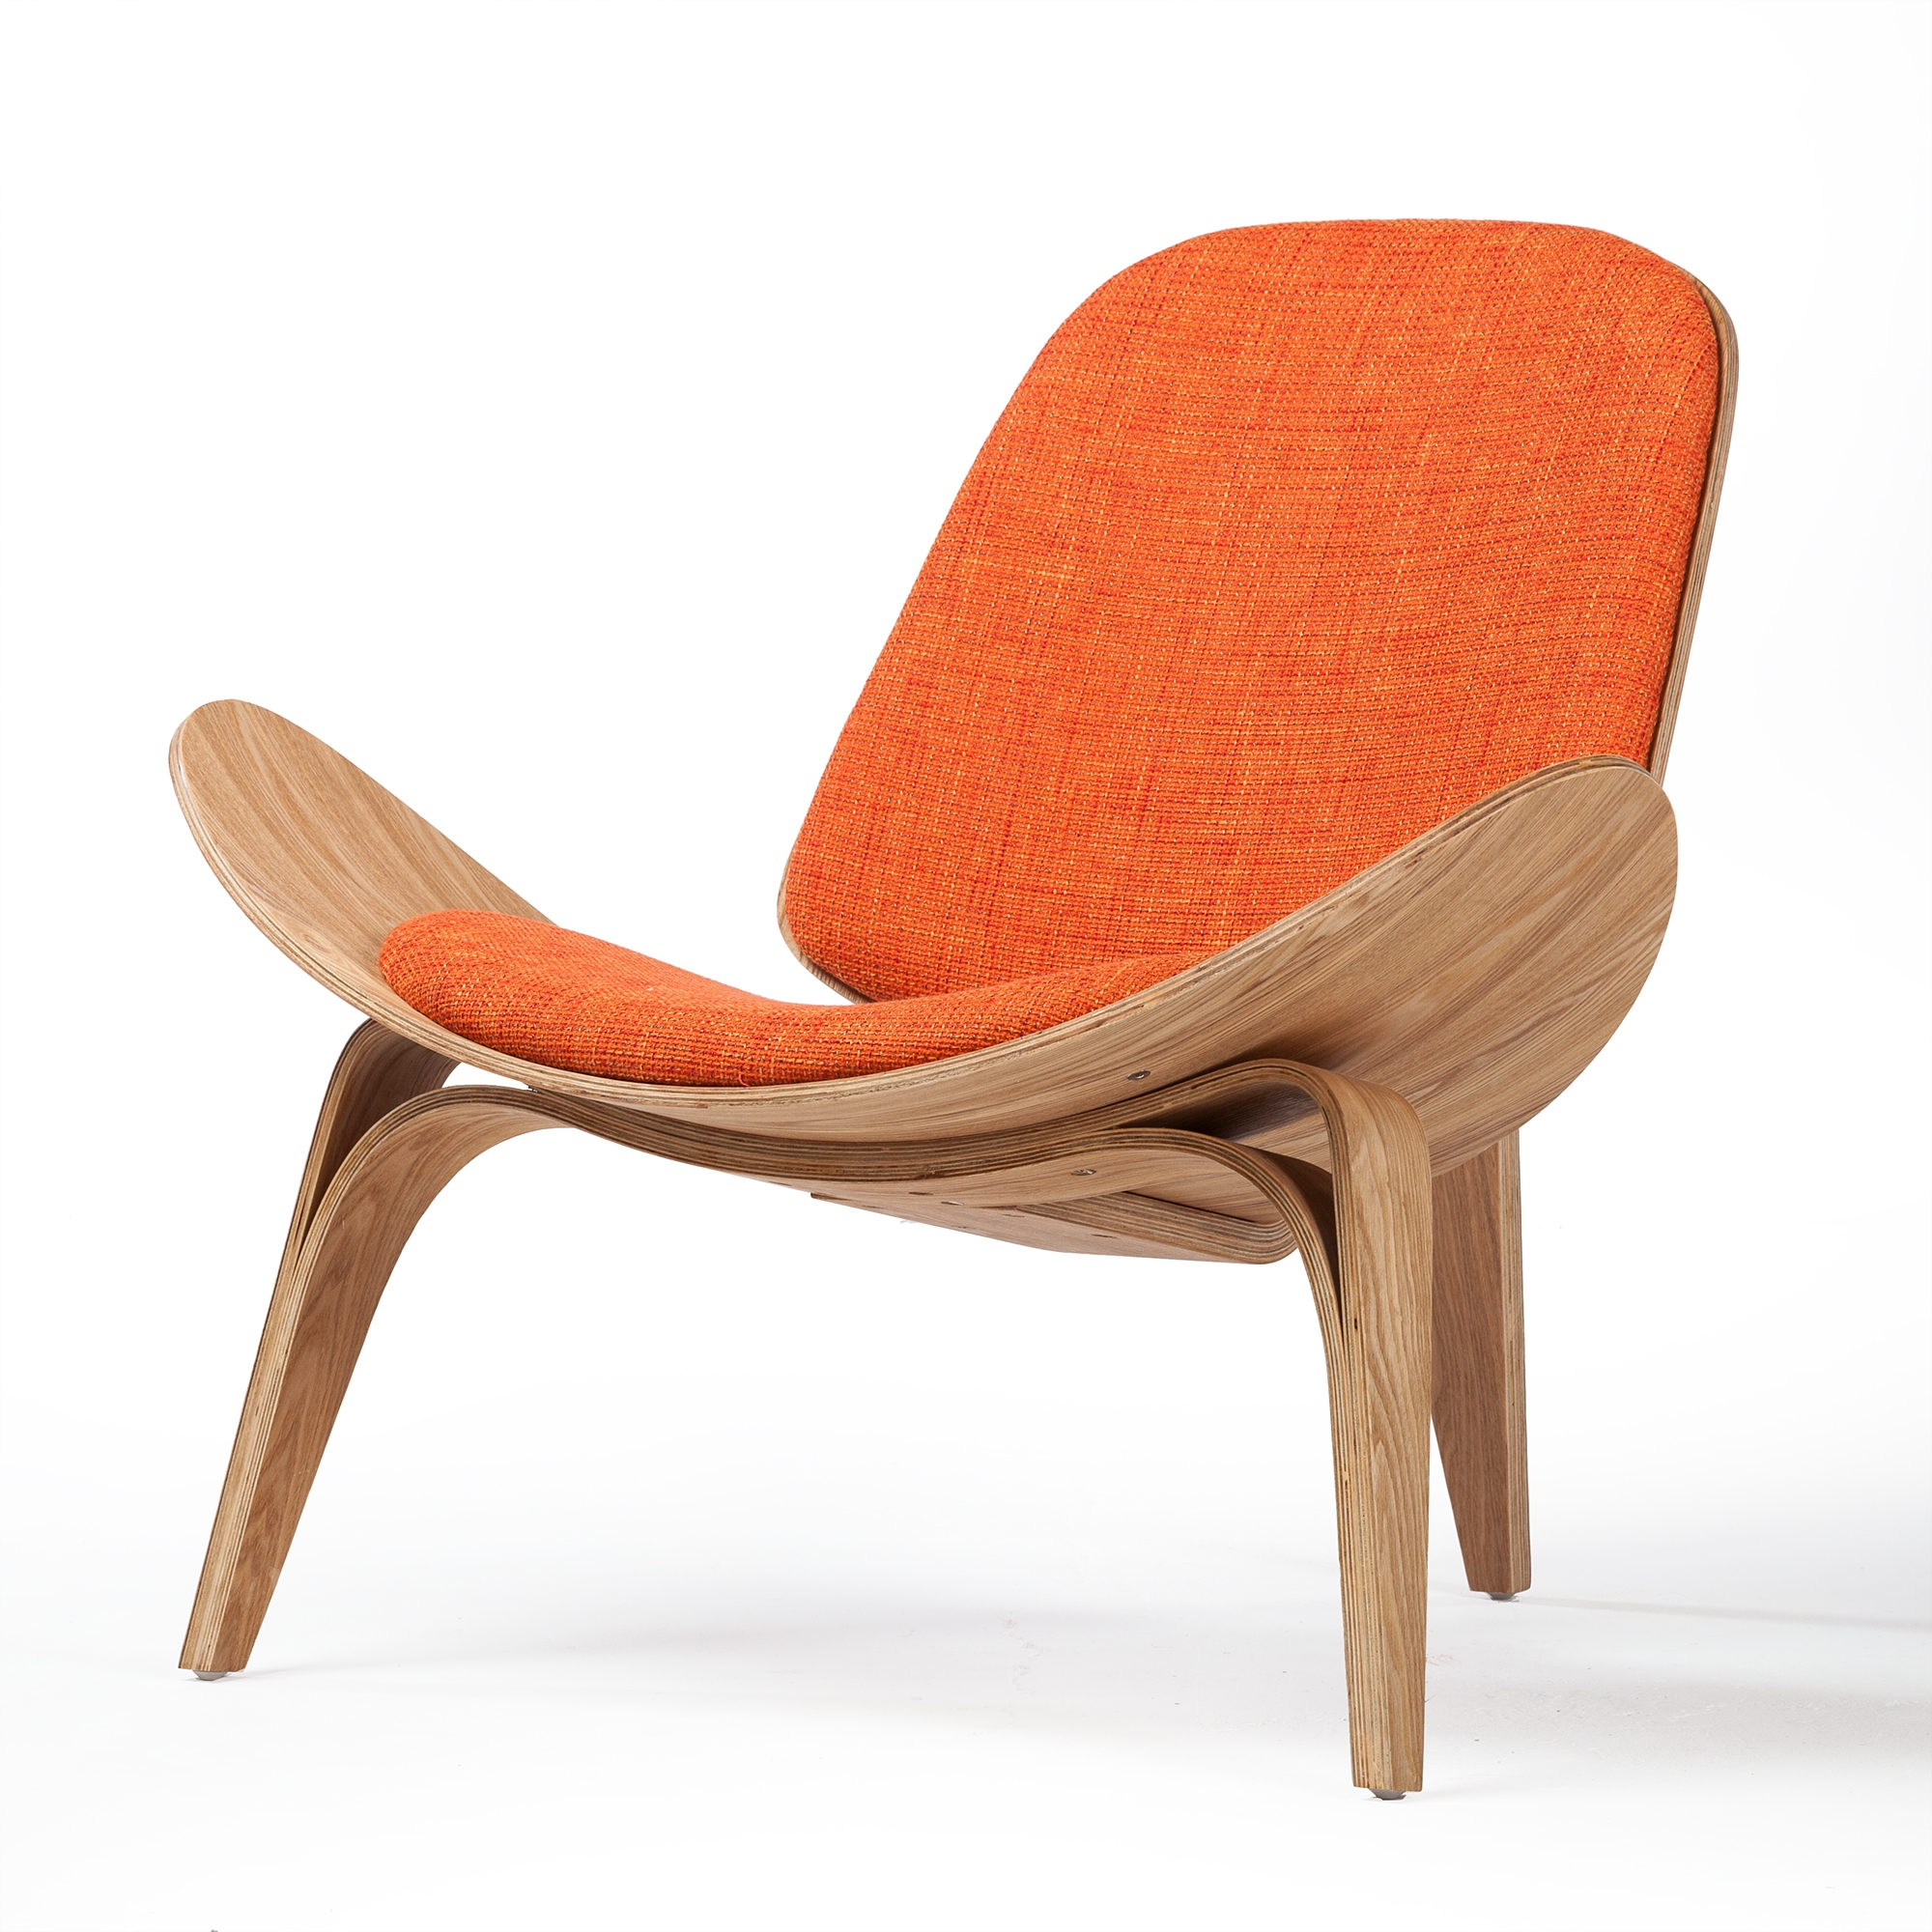 Shell Inspired Chair 07 Hans Wegner Orange Larger Photo Email A Friend